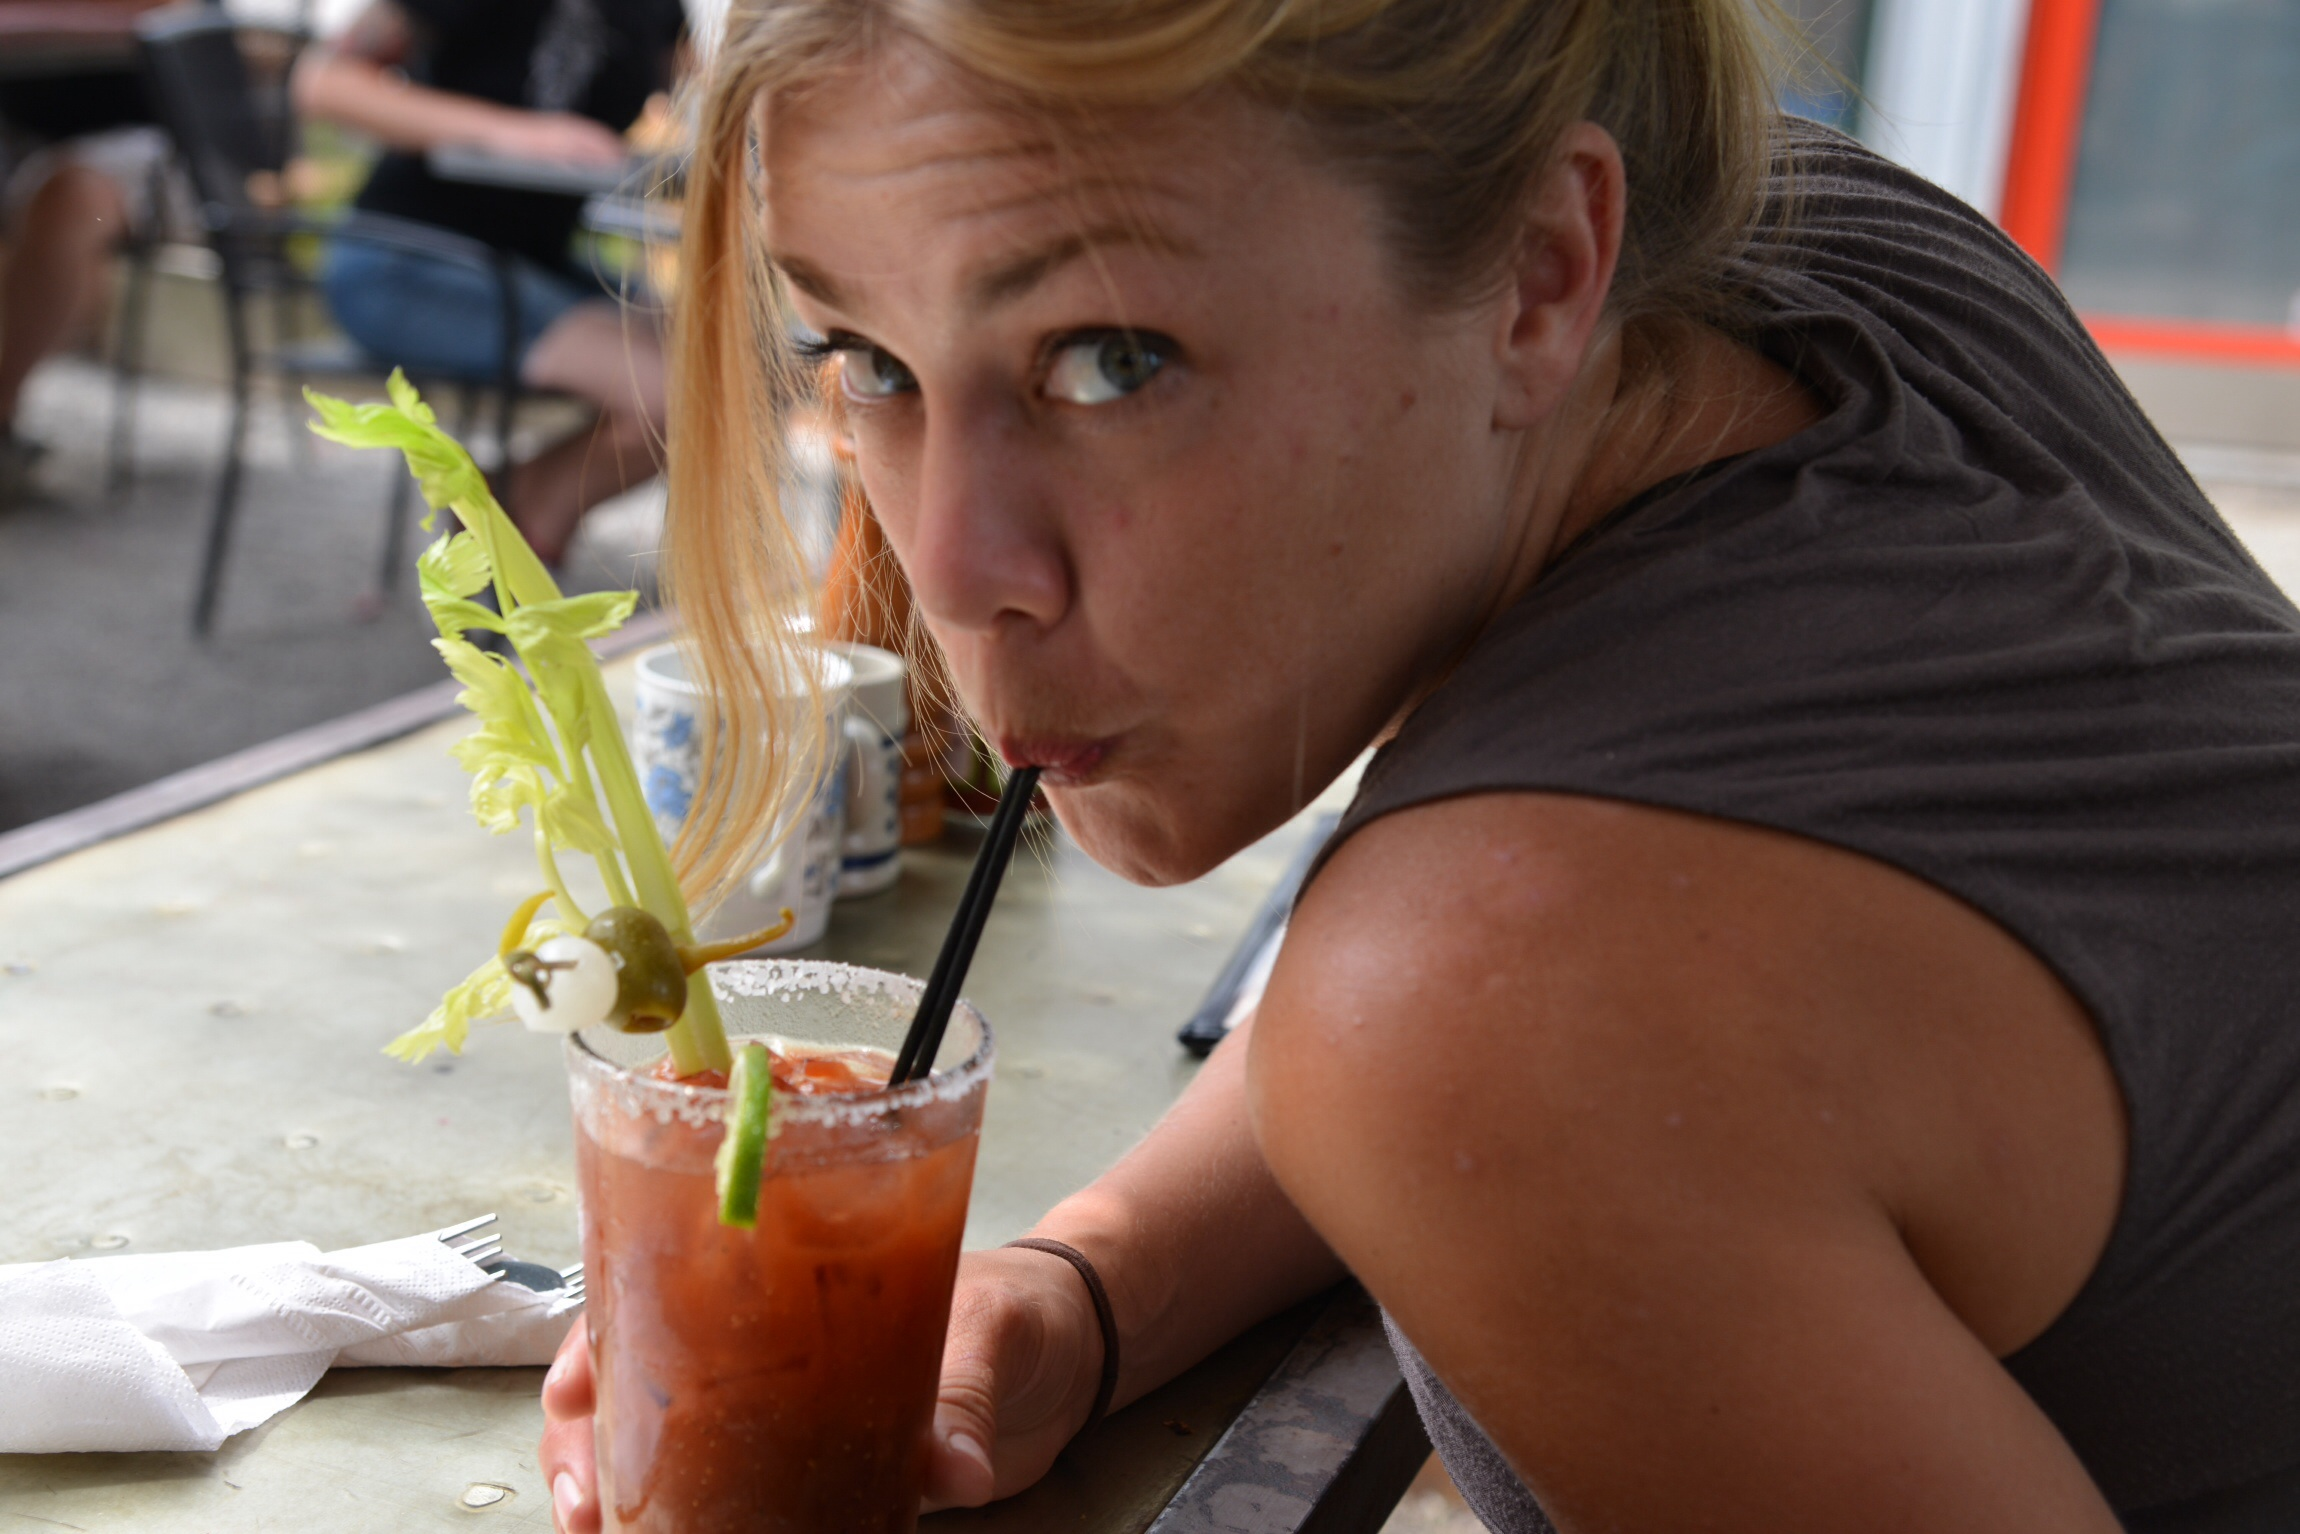 Rosemary infused Bloody Mary at the Tin Shed in Portland